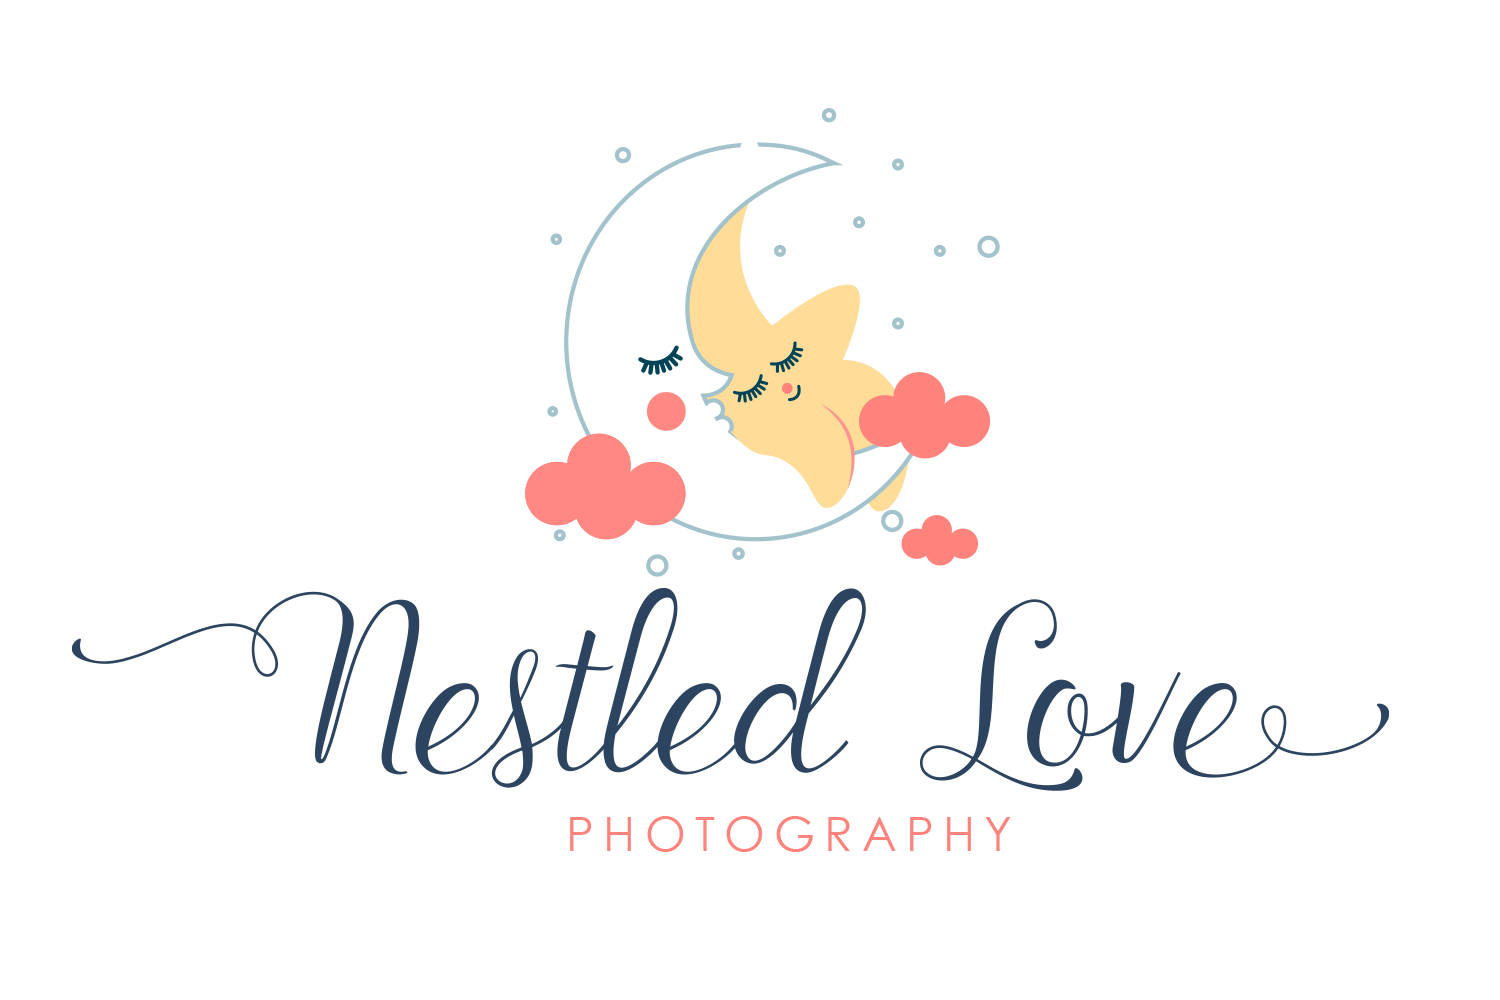 Nestled Love Photography